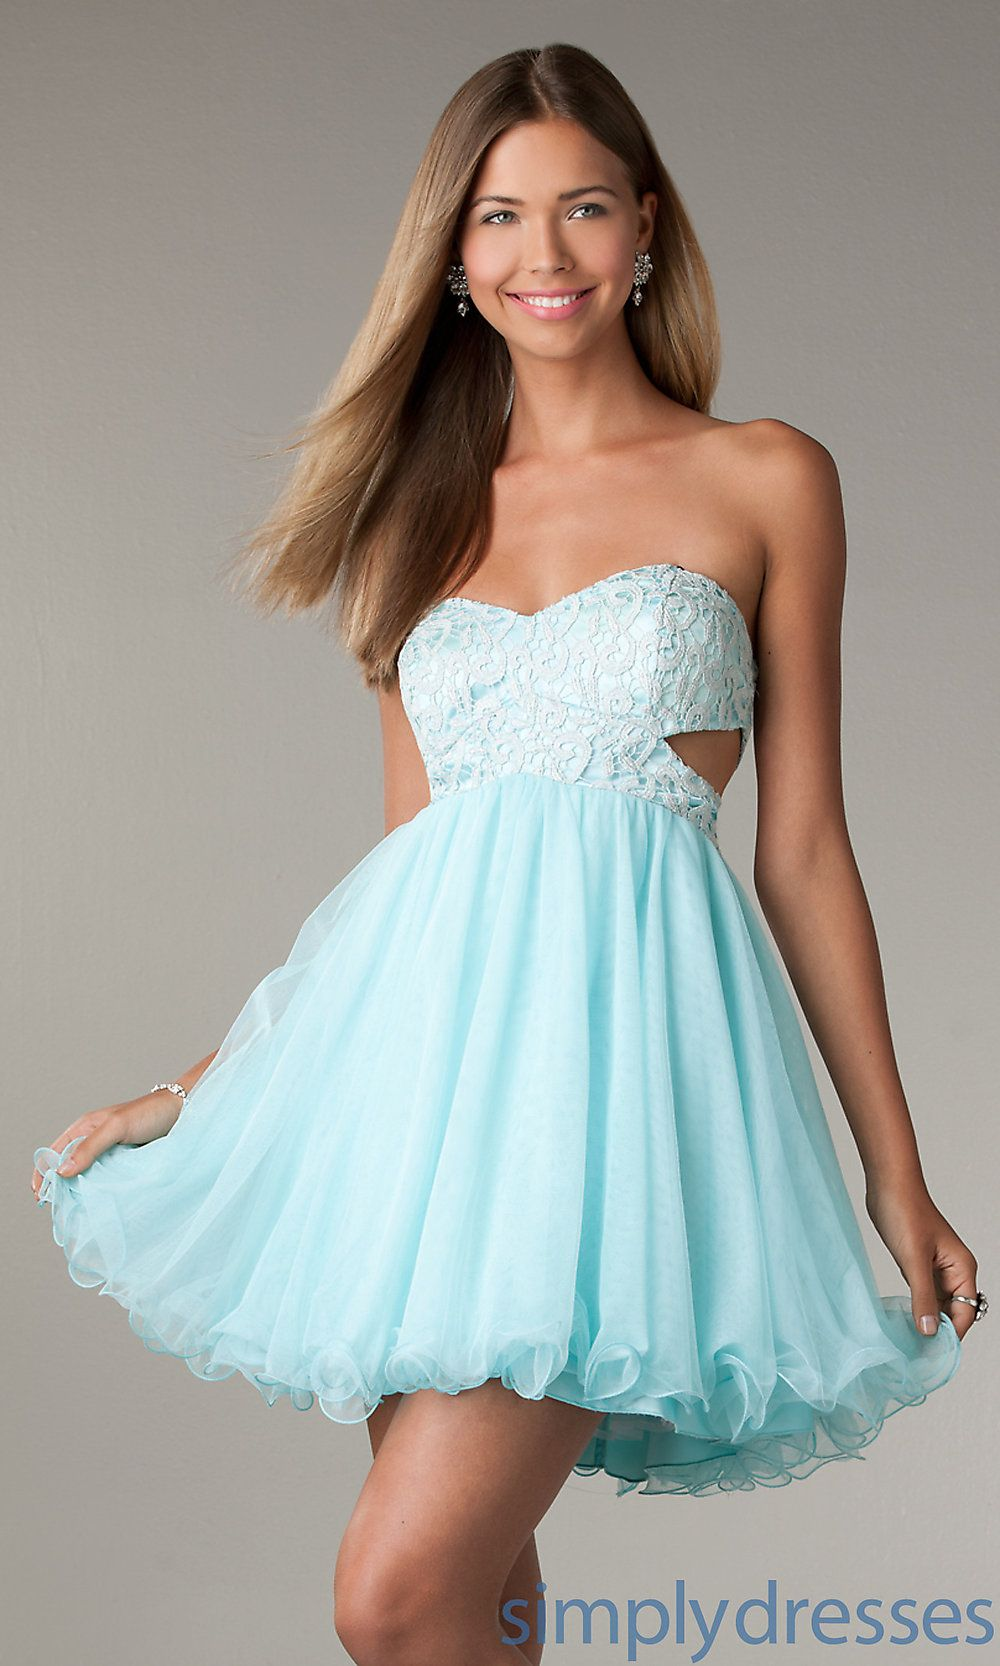 Tween dresses strapless long | Short Strapless Prom Dress with Cut ...